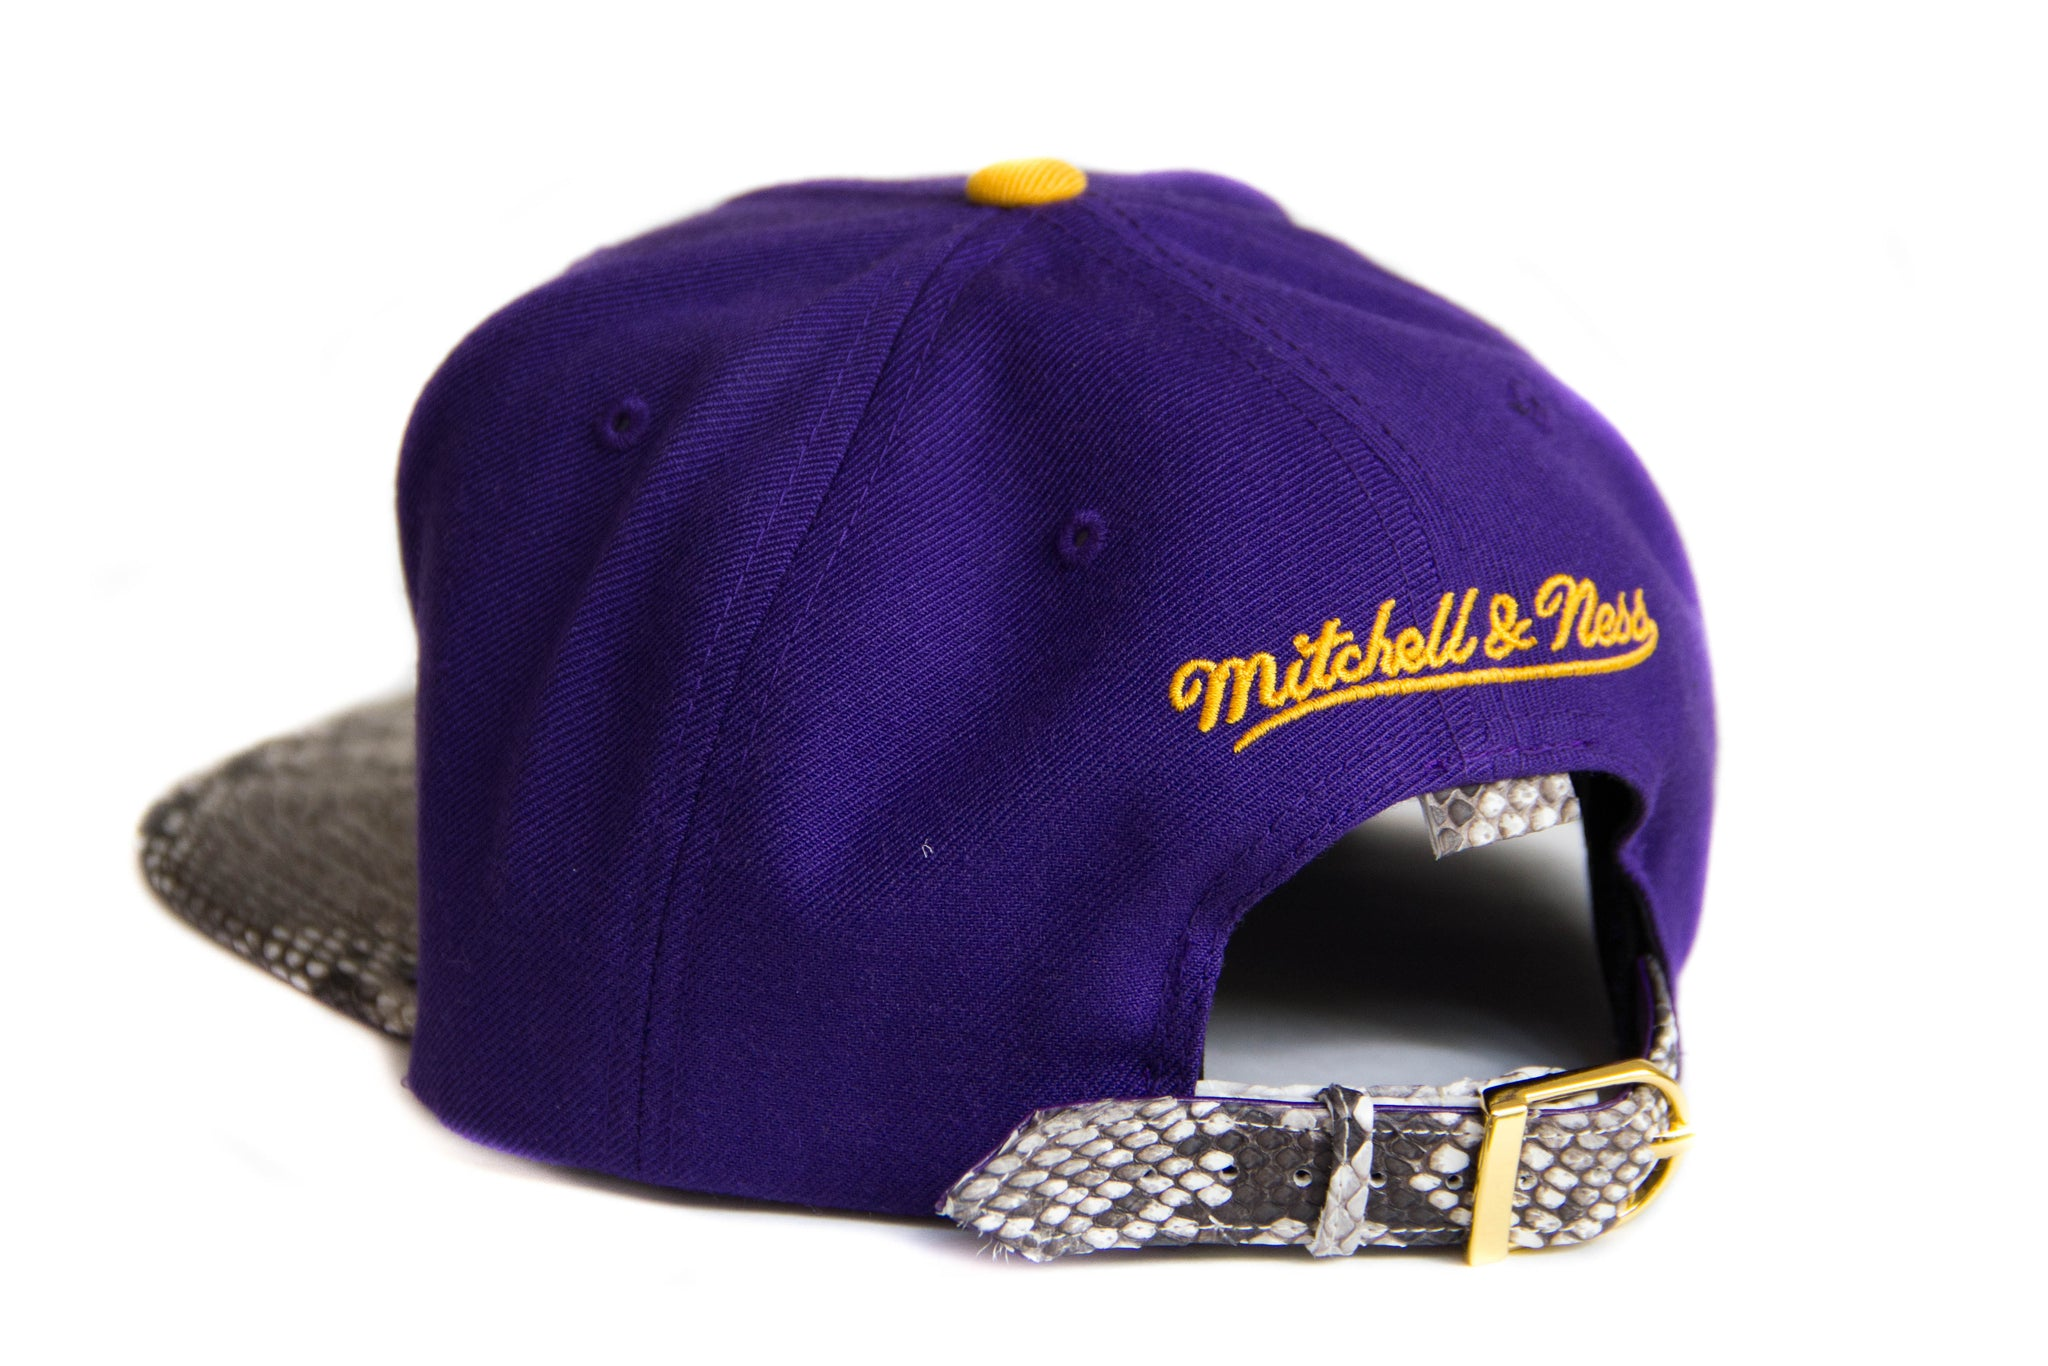 HATSURGEON x Mitchell & Ness Los Angeles Lakers Bold Print Strapback